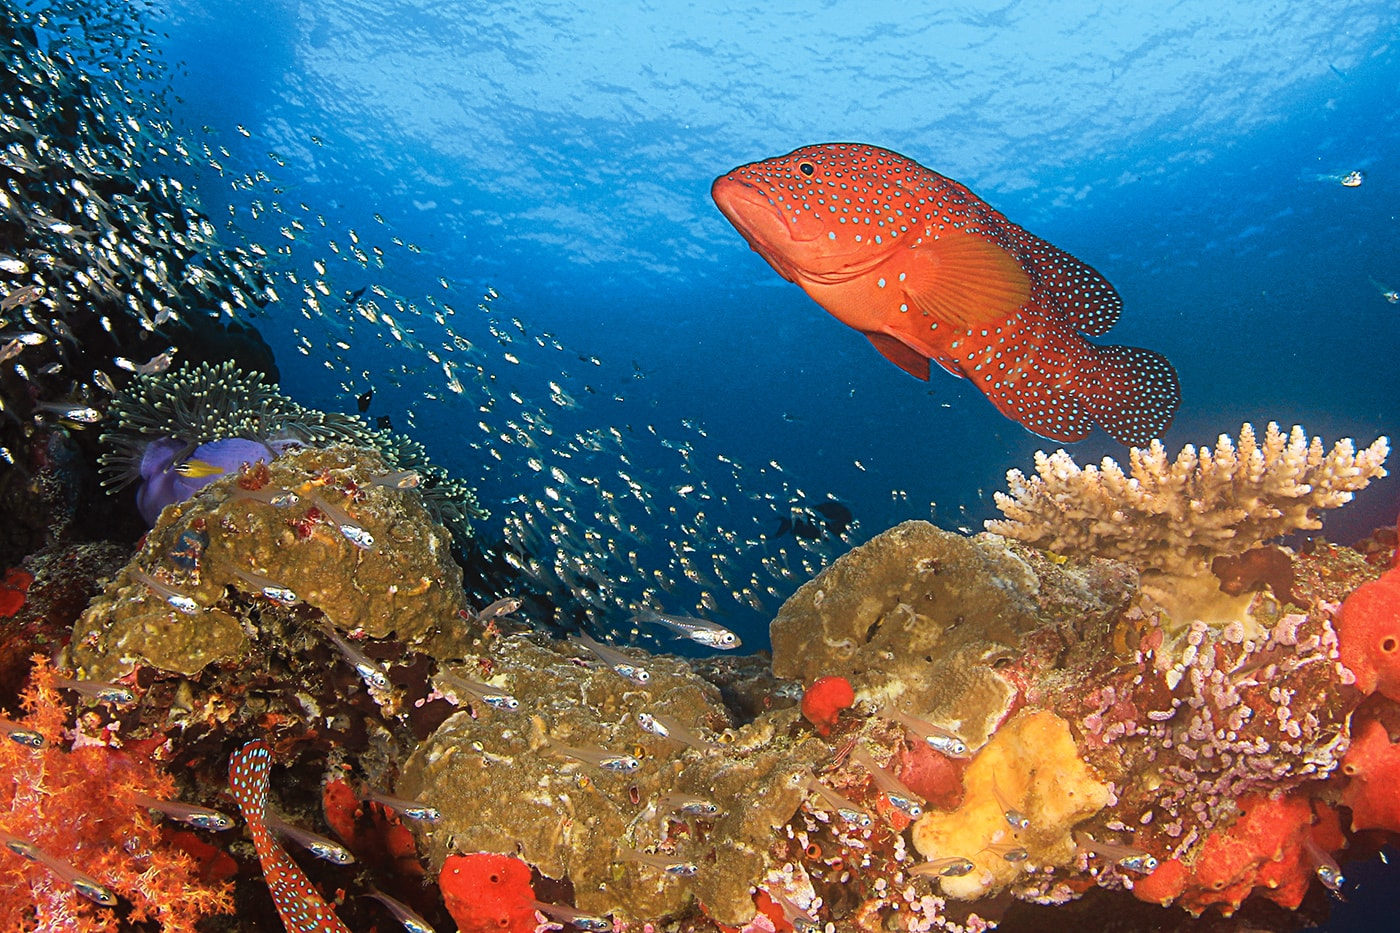 The Ribbon Reefs are managed under a strict no-take policy that provides protection for grouper and other species normally targeted by fishermen.